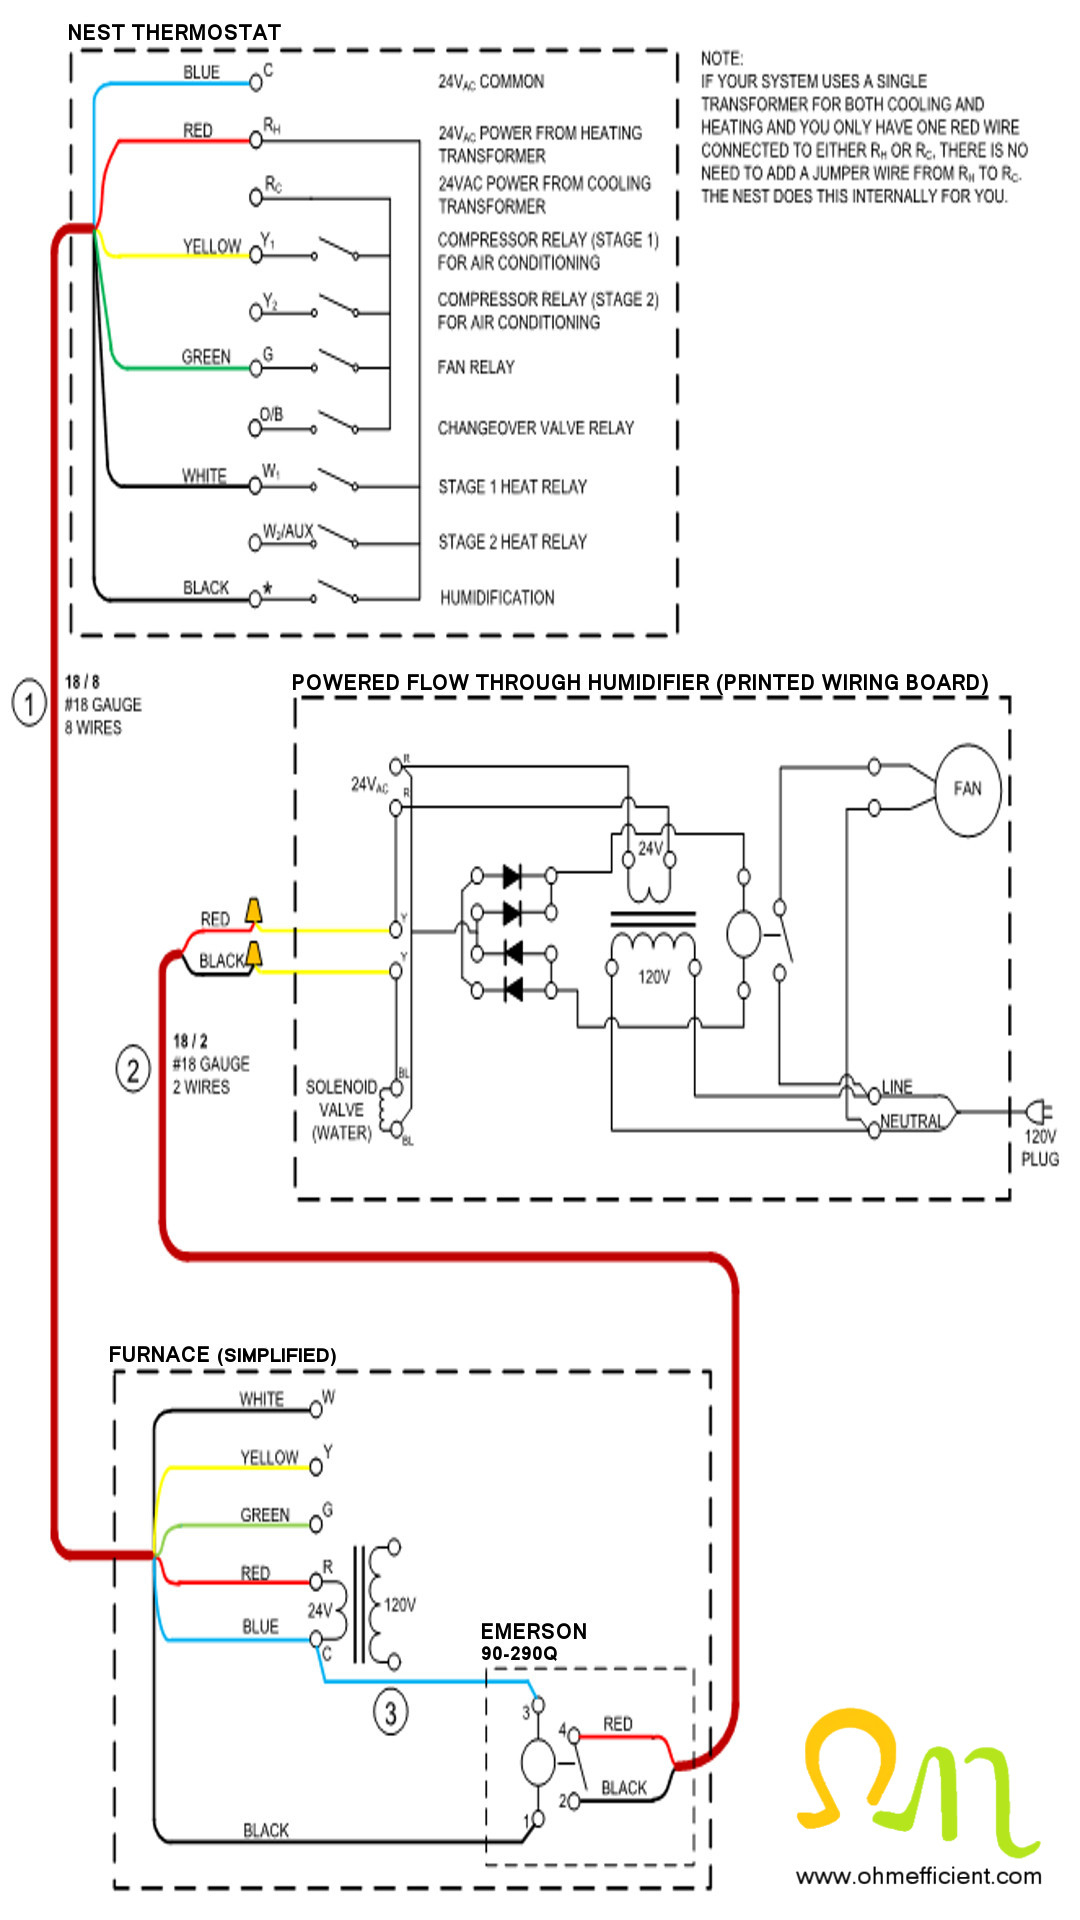 Nest Thermostat Wiring Diagram Air Conditioner